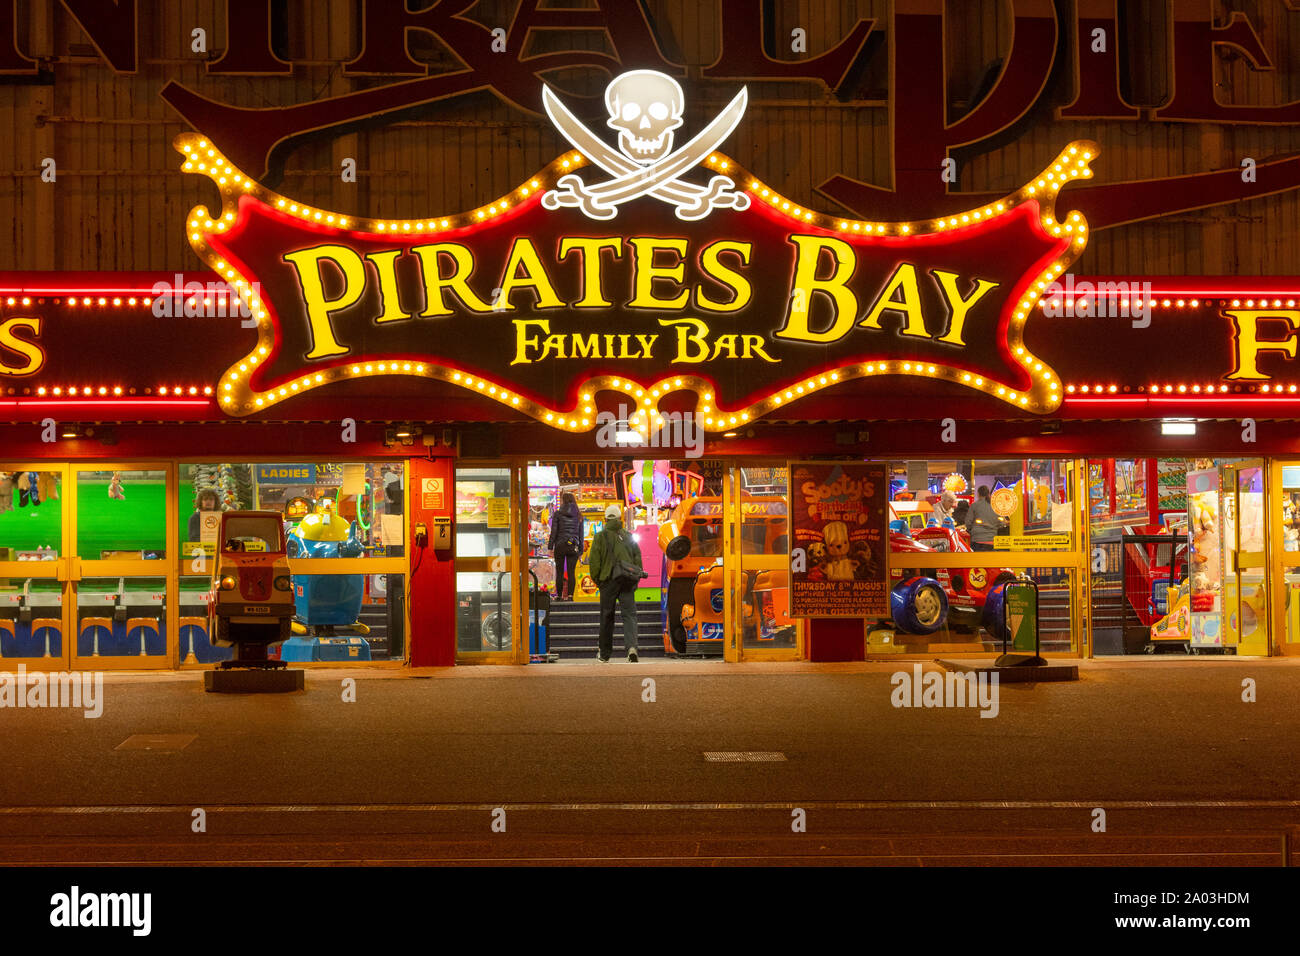 Pirates Bay, a family bar and amusement arcase in Blackpool, a coastal holiday destination in Northwest of England Stock Photo